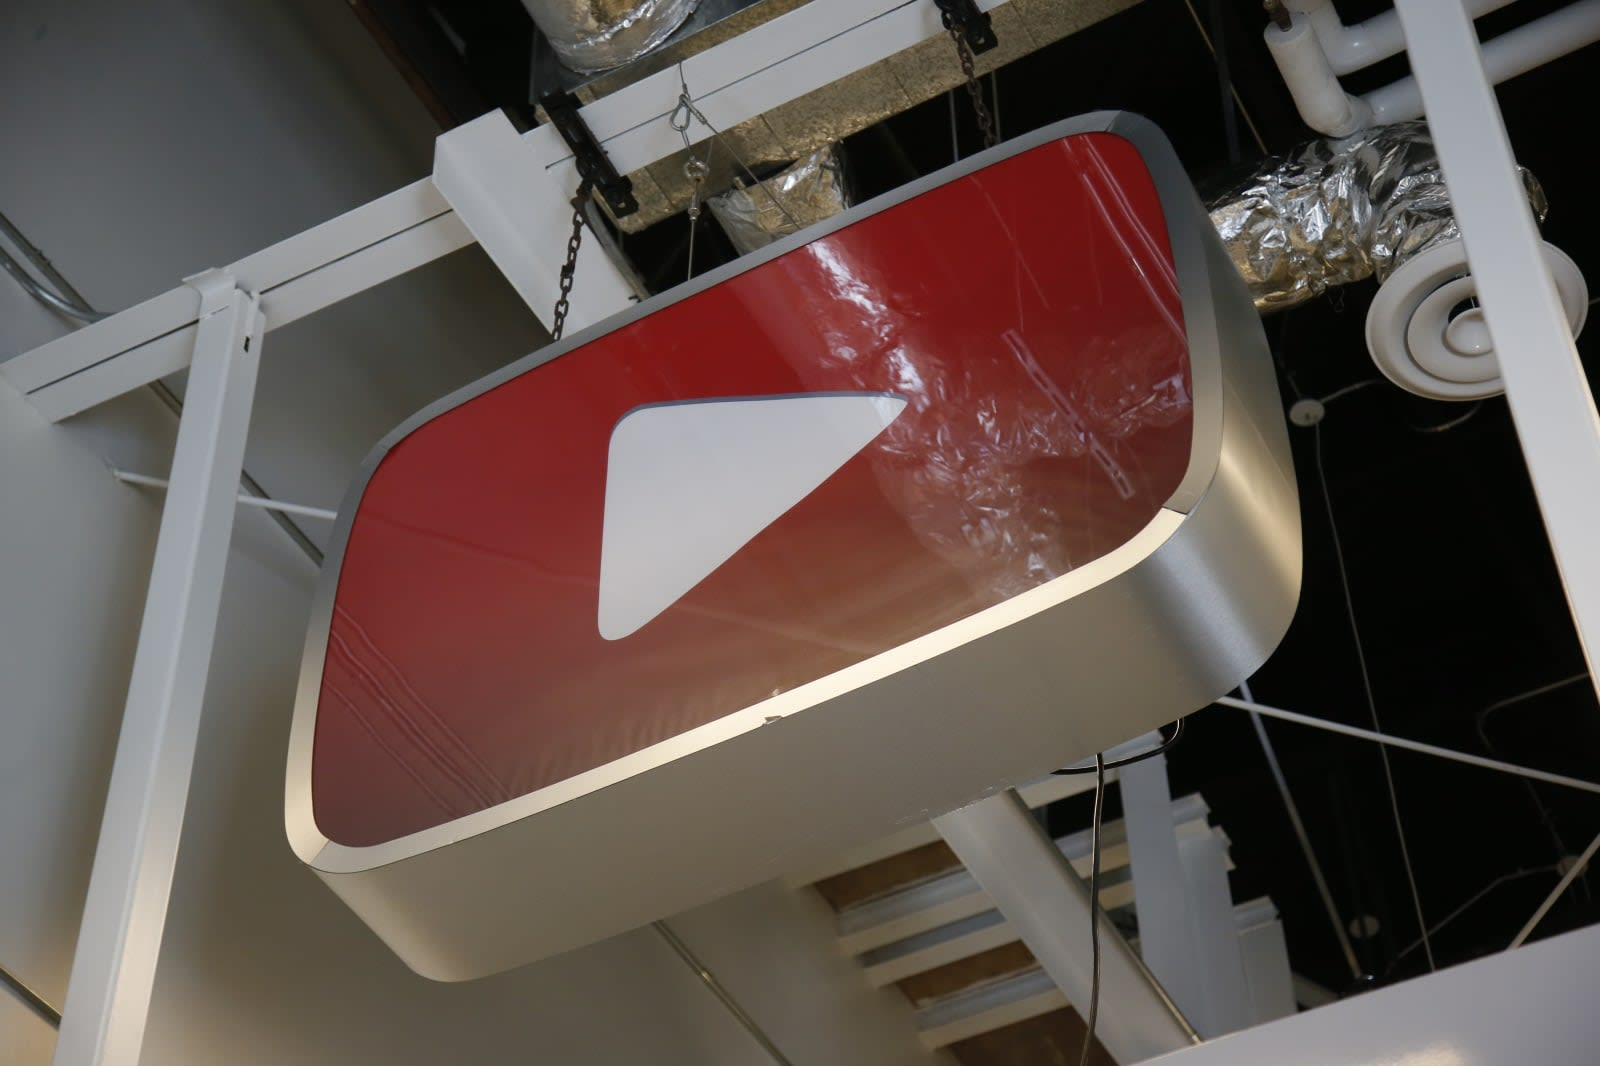 YouTube quietly offers free, ad-supported movies